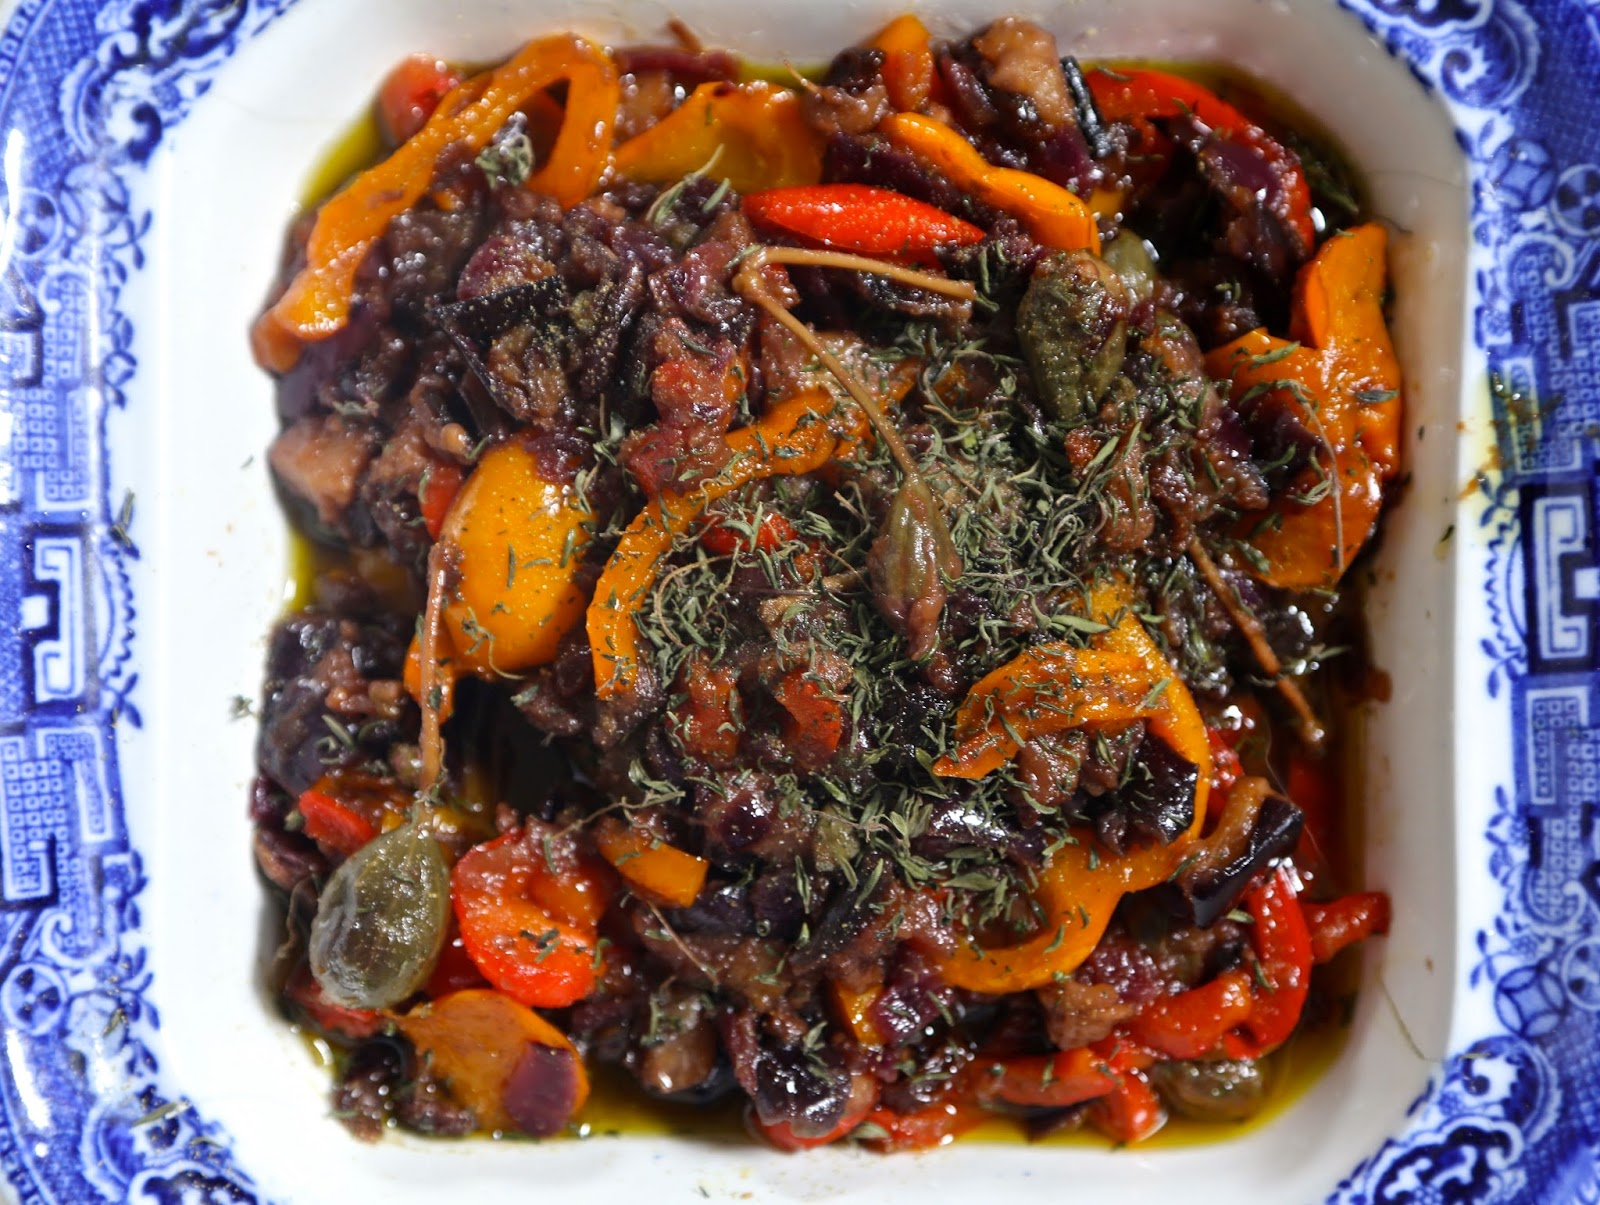 caponata secret garden club